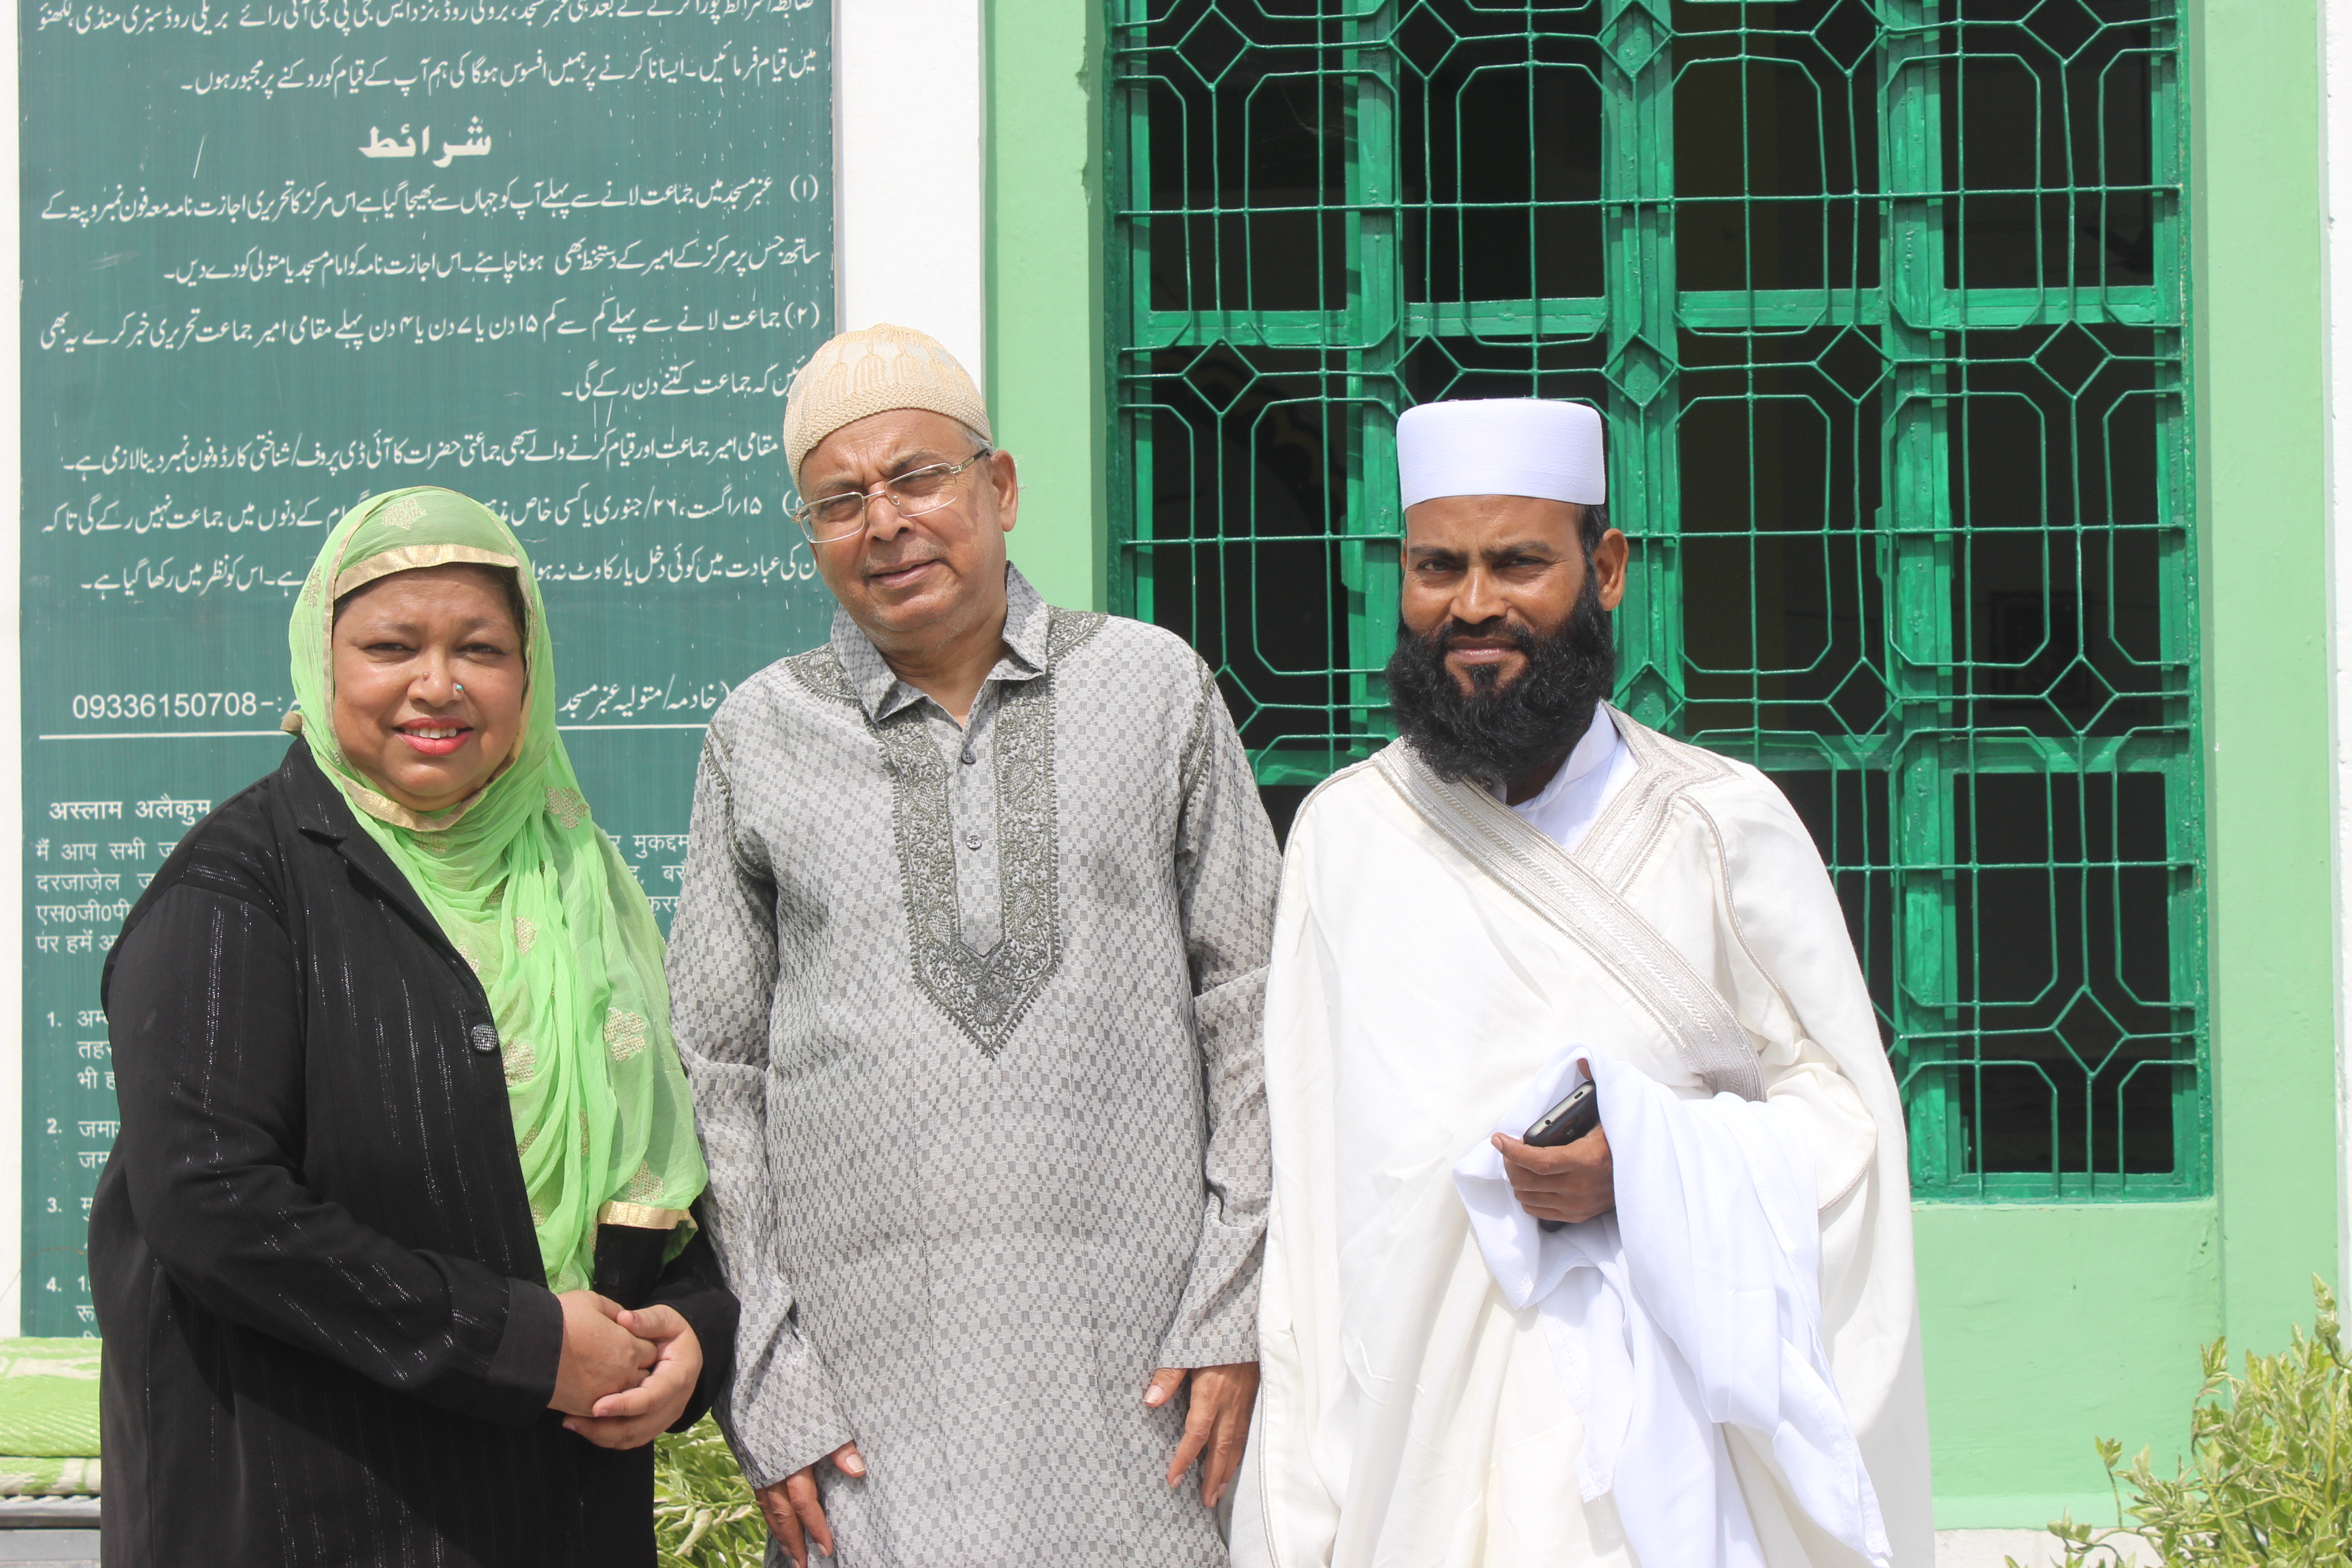 With Husband Mohammad Idrees Ambar and Imaam e Jumah 'Ambar Masjid'